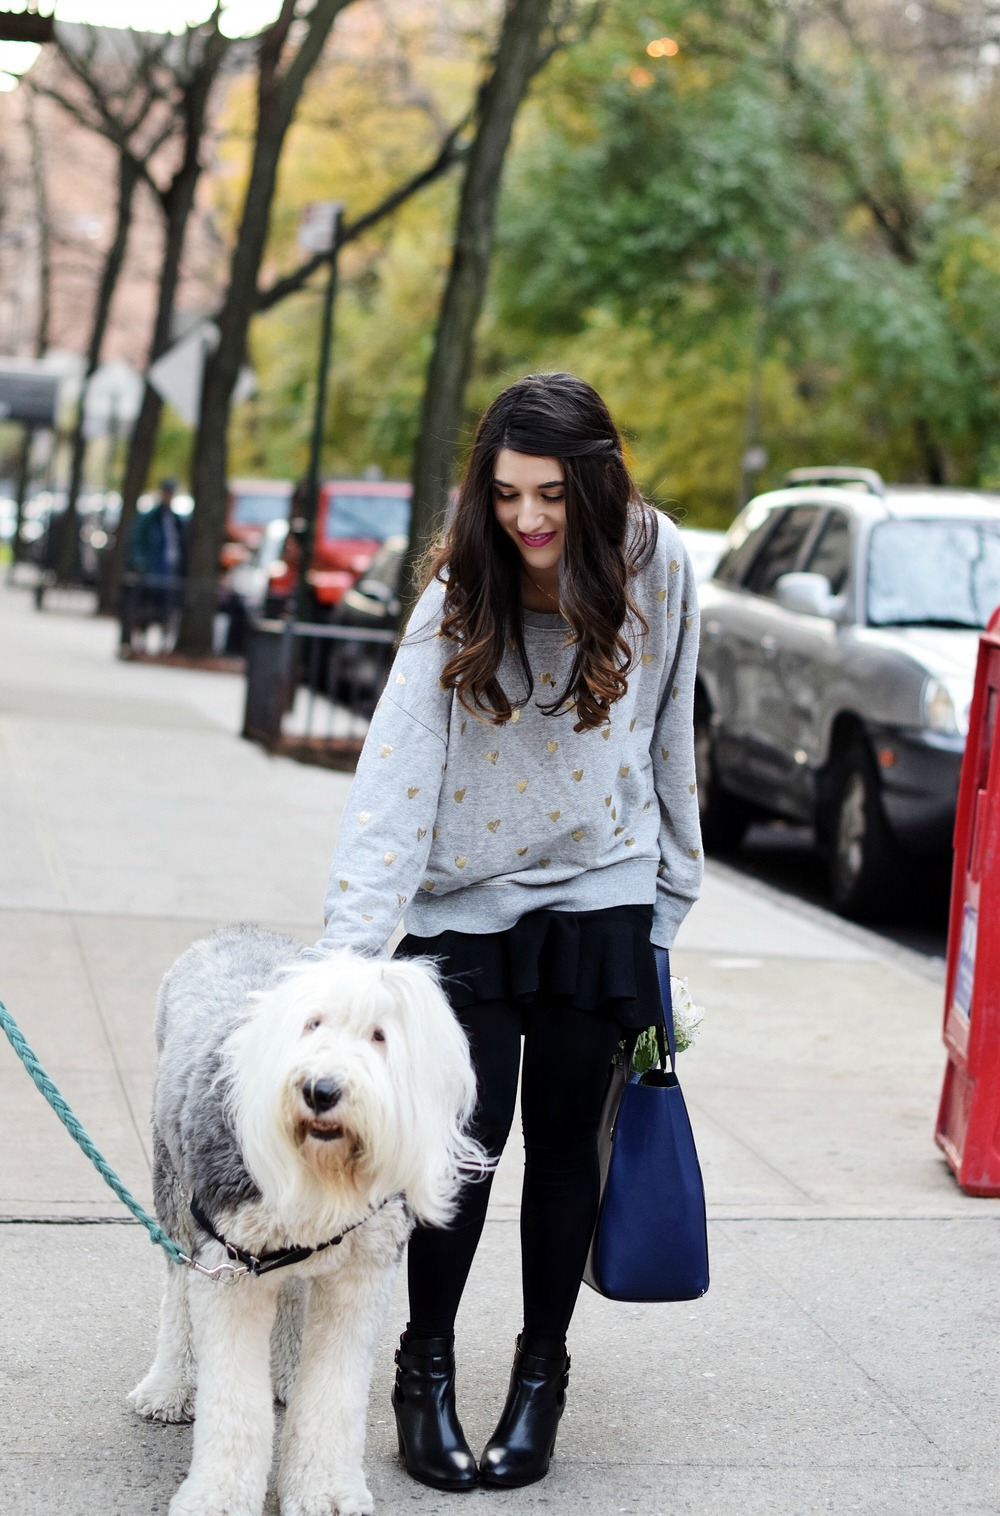 Oversized Sweatshirt Ivanka Trump Soho Tote Louboutins & Love Fashion Blog Esther Santer NYC Street Style Blogger Nordstrom Black Booties Blue Bag Pocketbook Purse Shopping What To Wear Jcrew Winter Dog Model Photoshoot Hair Girl Women Skirt Flowers.jpg